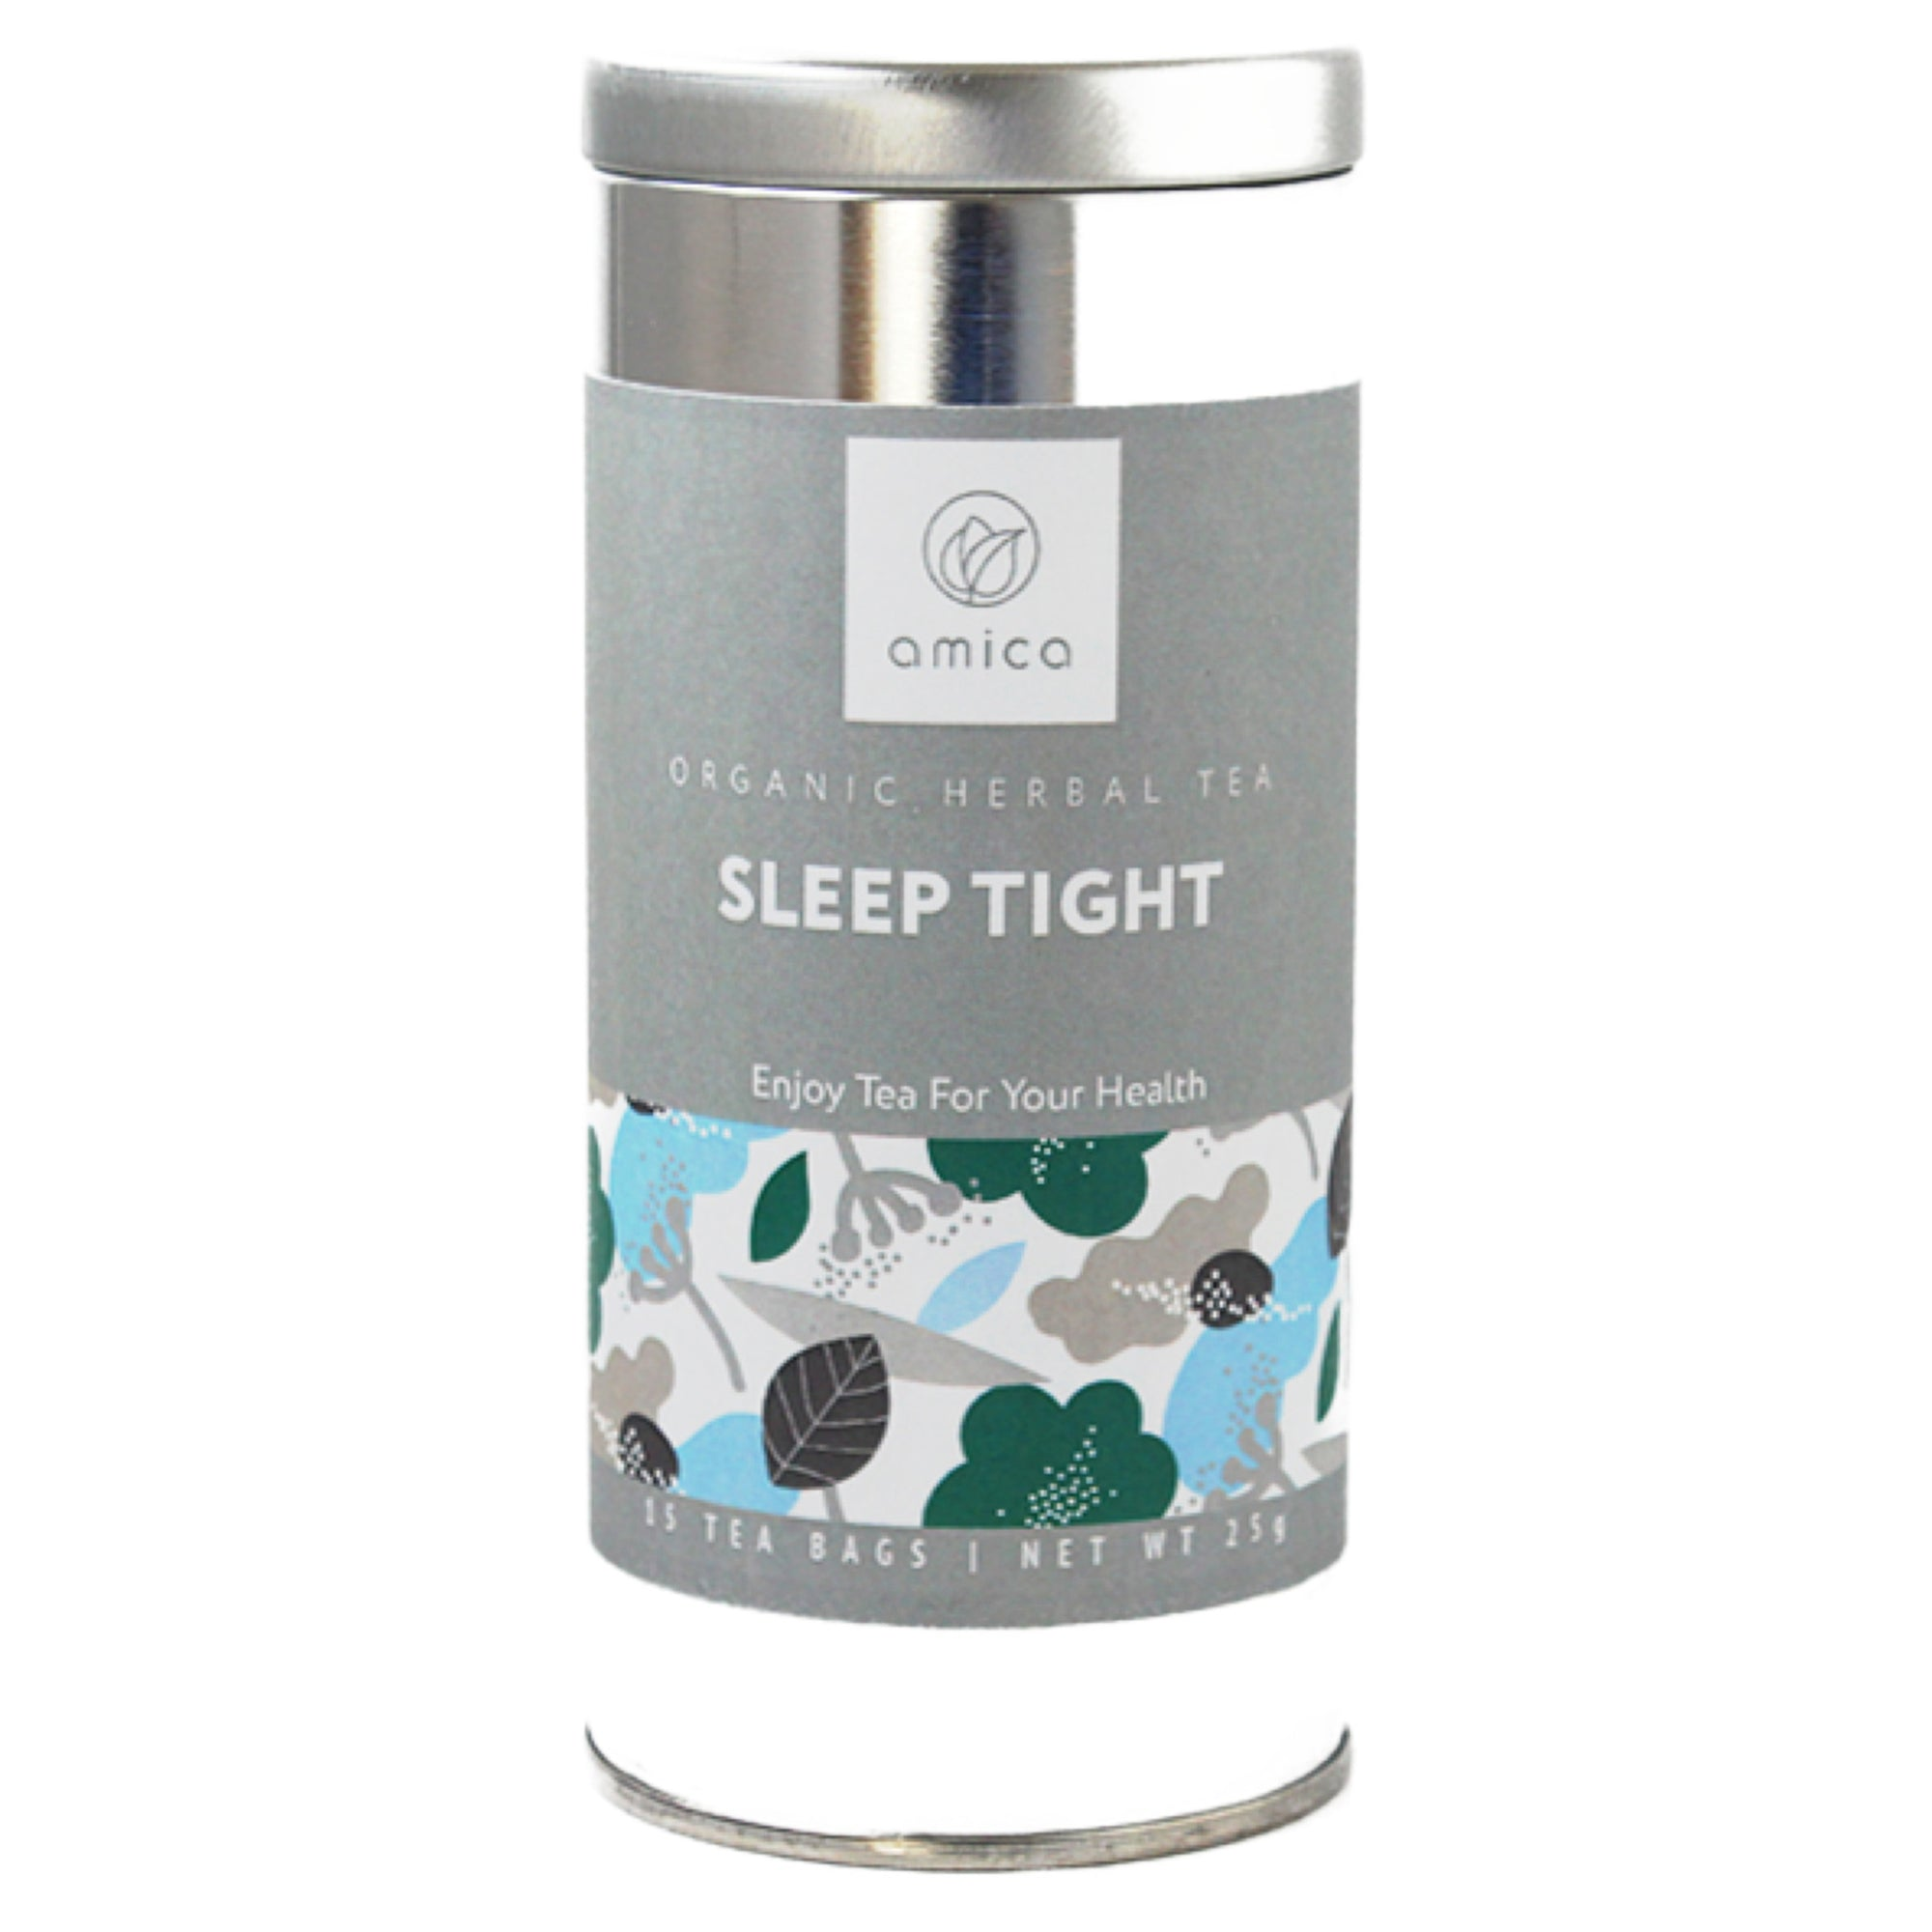 Sleep Tight Tea